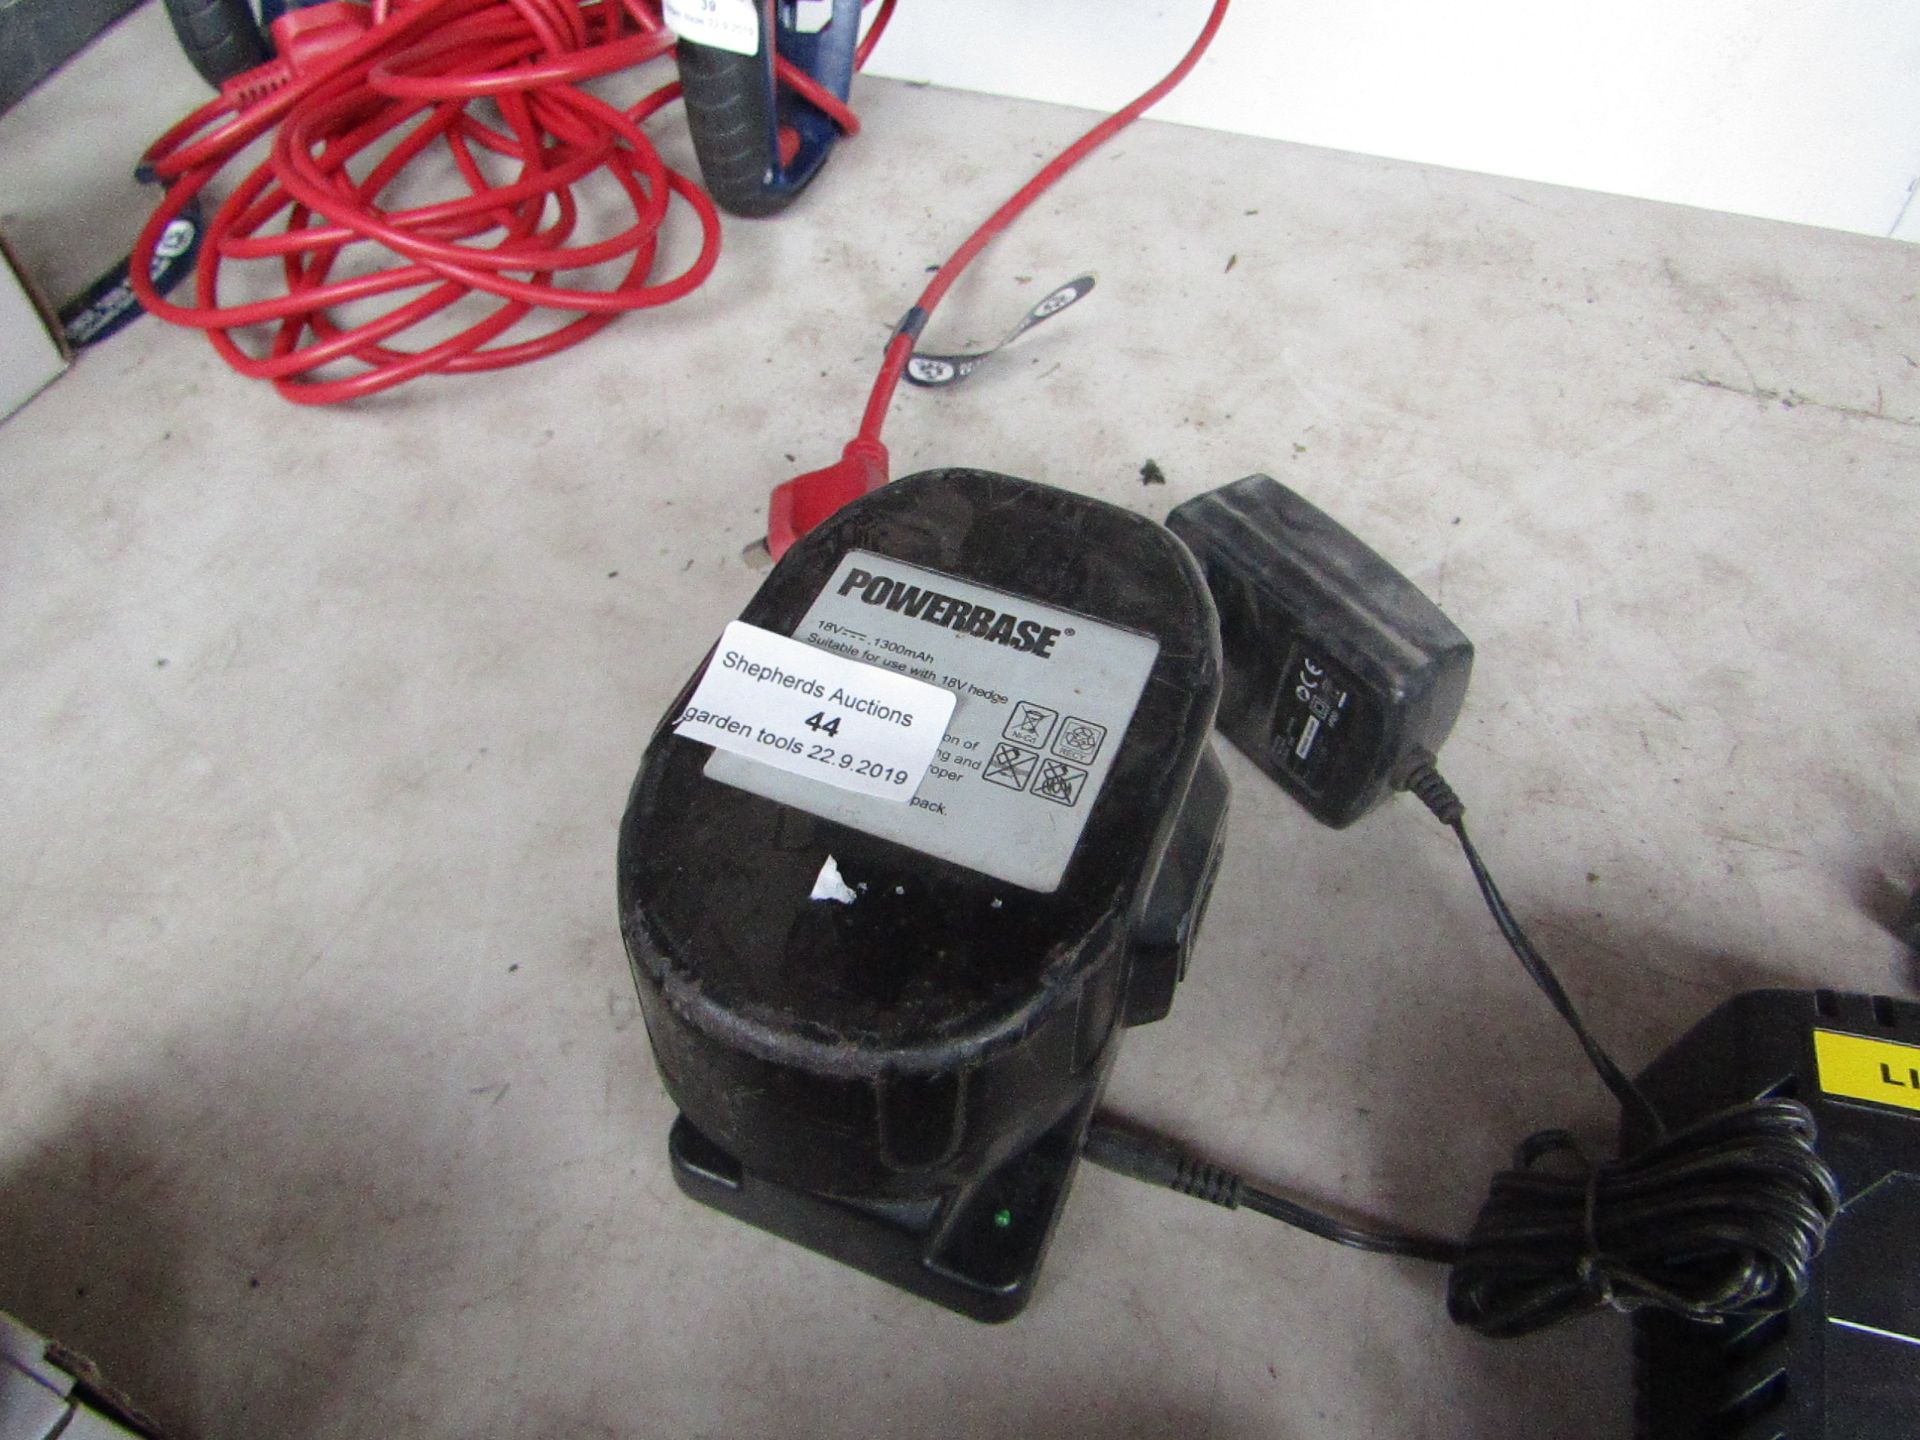 Lotto 44 - Power base 18V battery with a Sovereign 24V charger, both unchecked